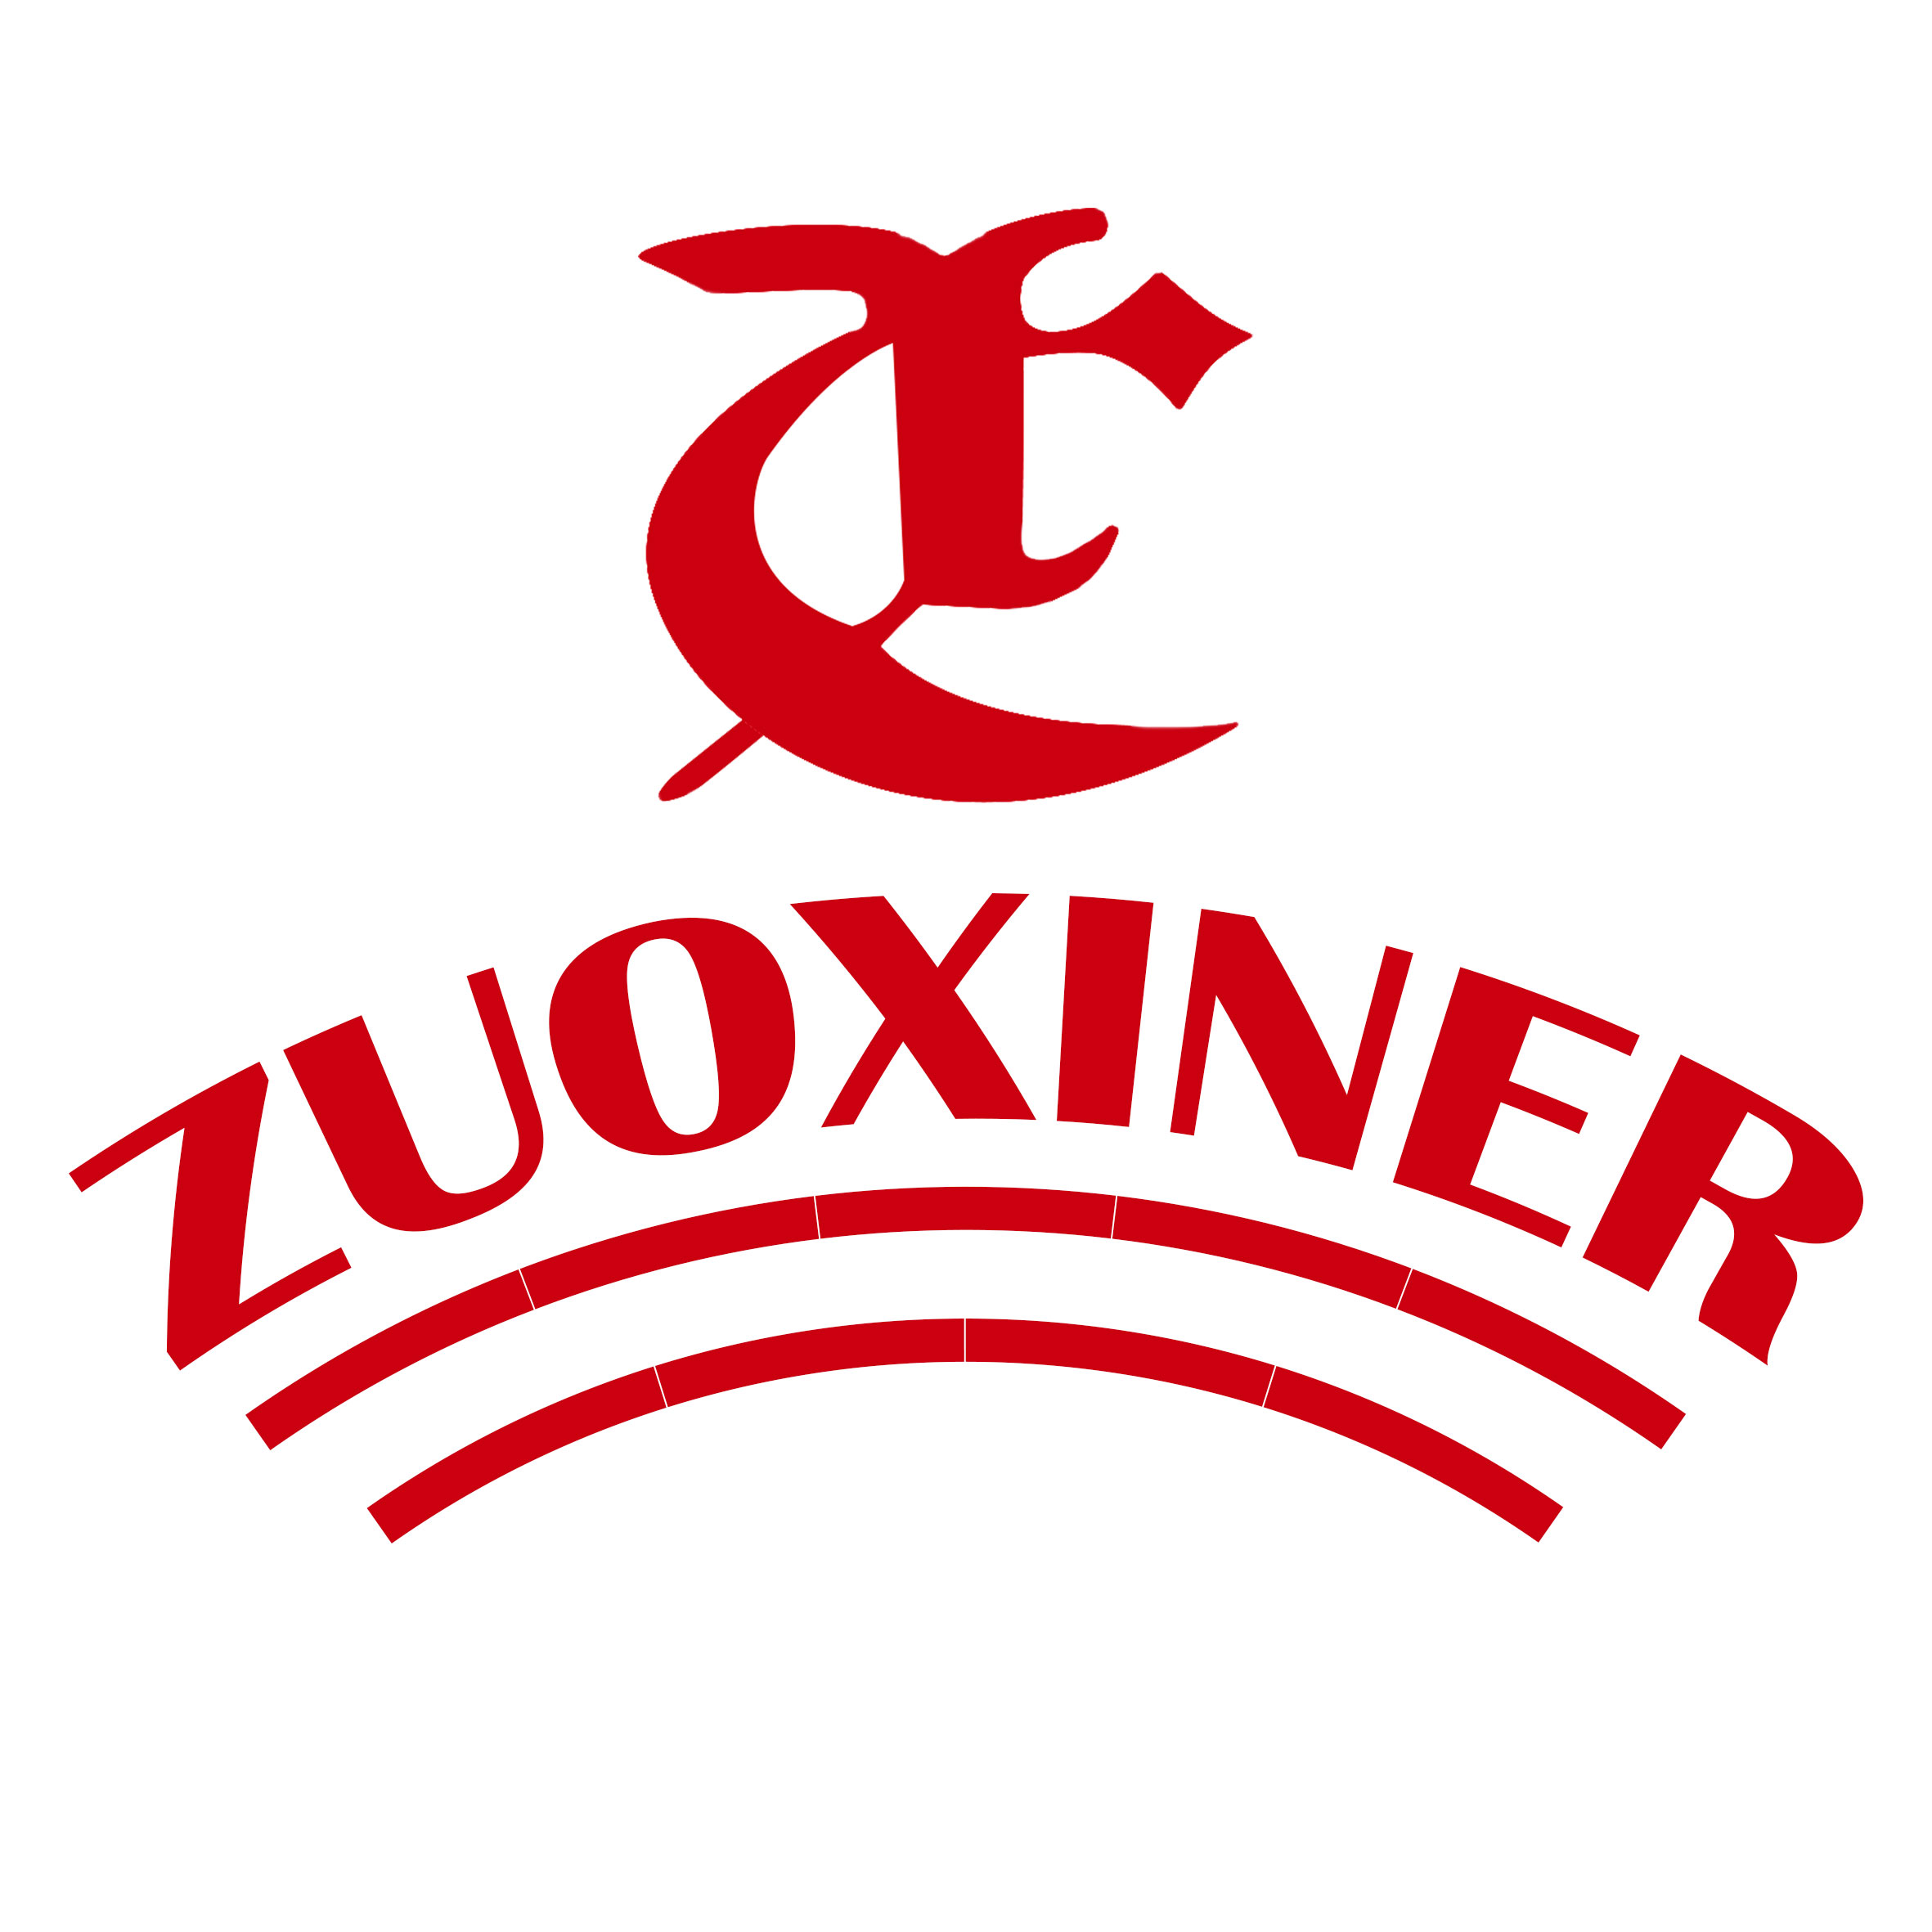 ZUOXINER CLOTHING LIMITED COMPANY OF YONGFENG COUNTY